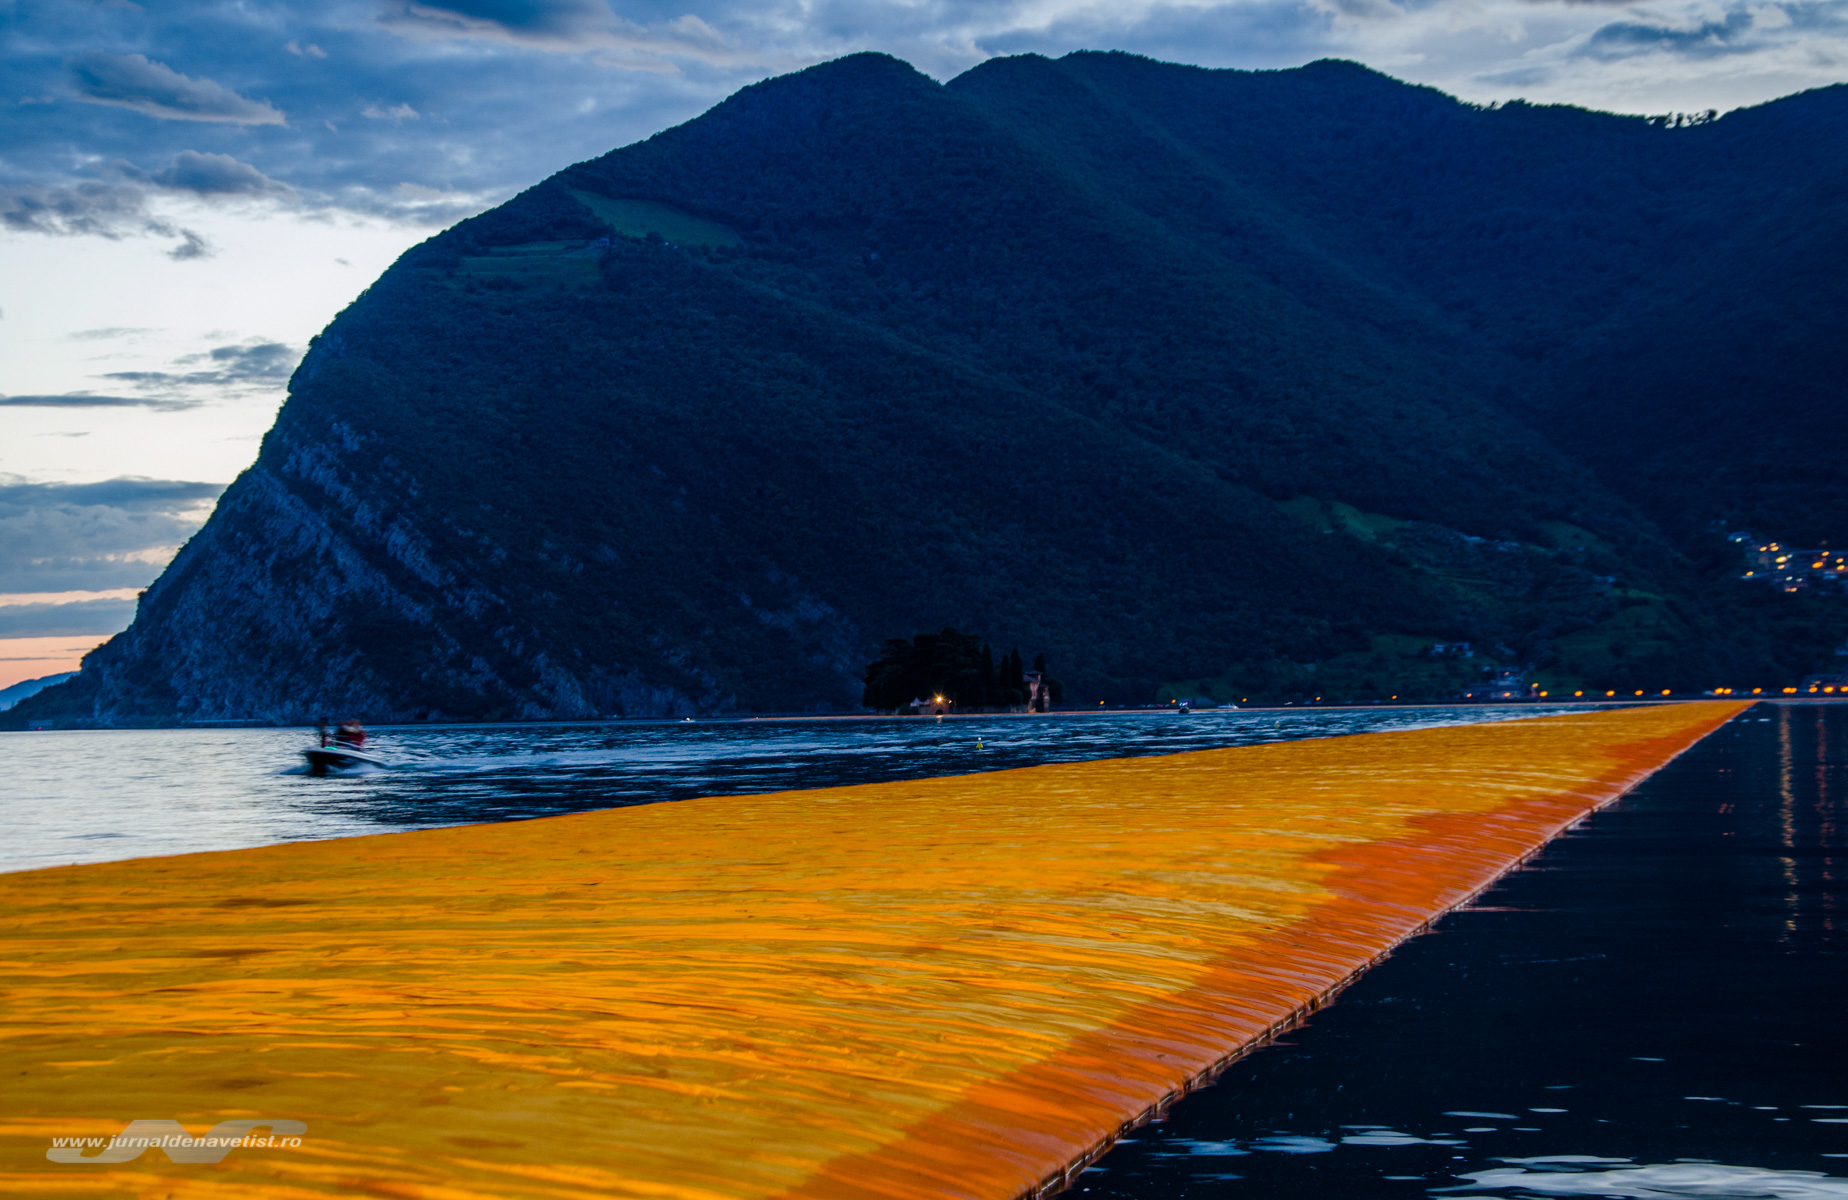 The Floating Piers 8103